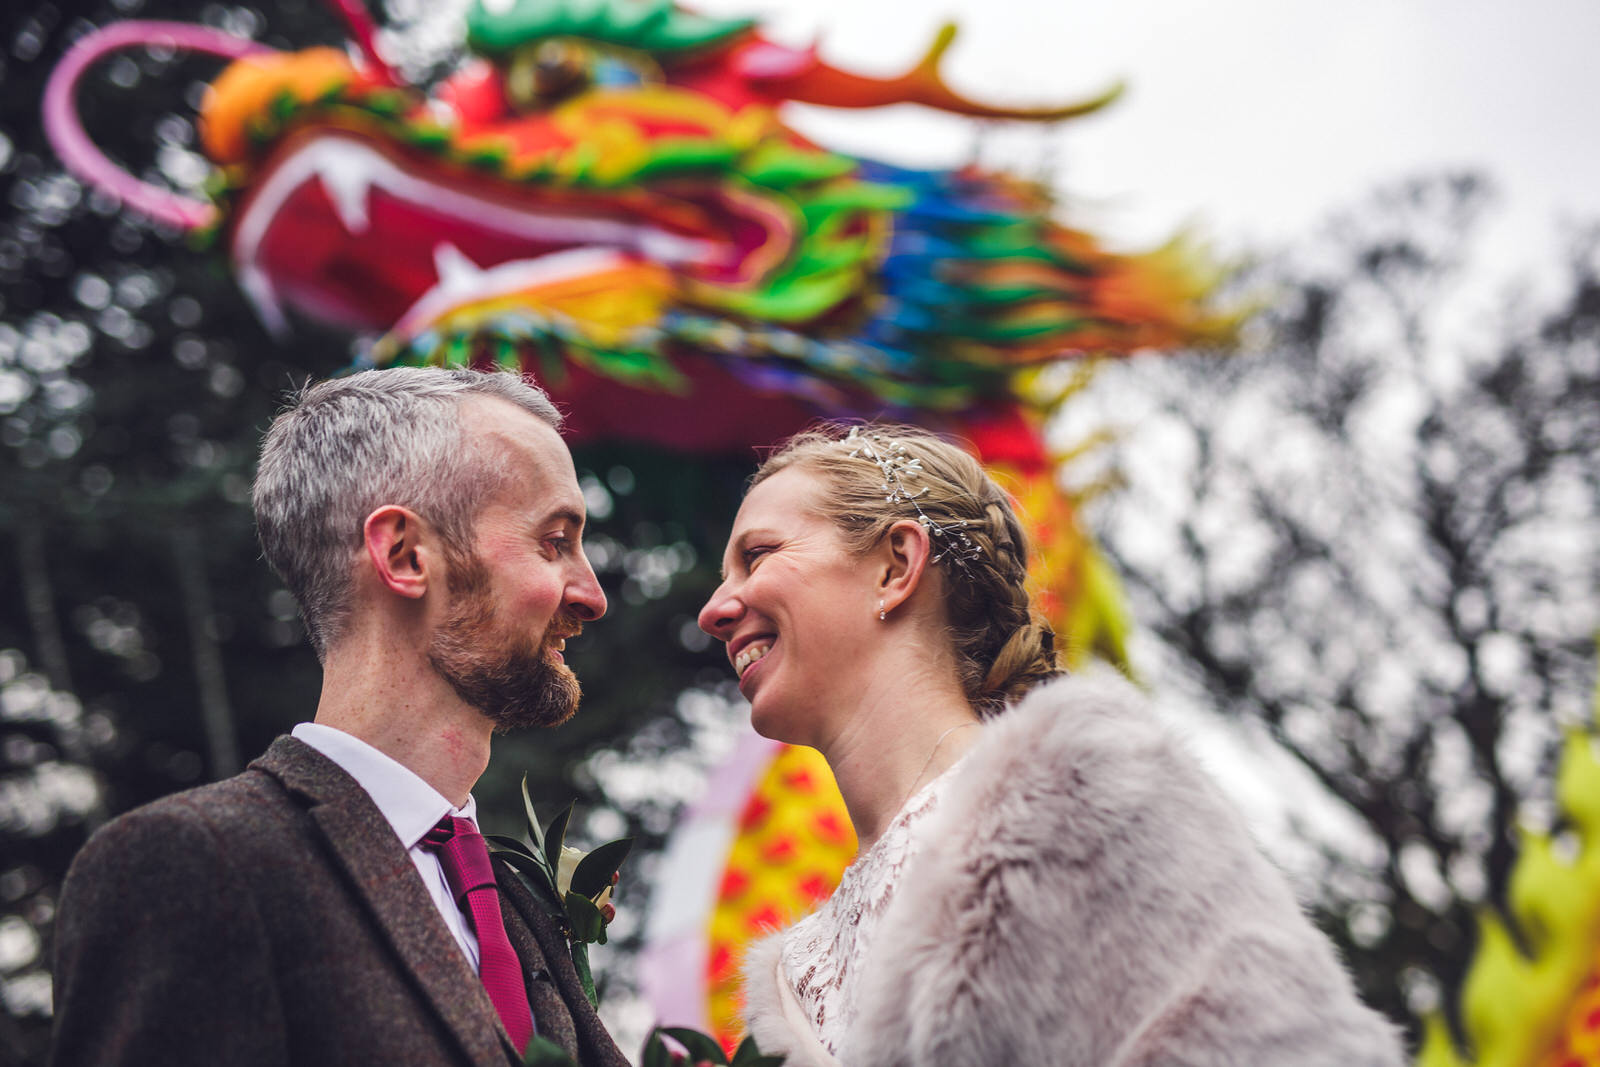 Roger_kenny-wedding-photographer-wicklow-dublin-zoo_071.jpg